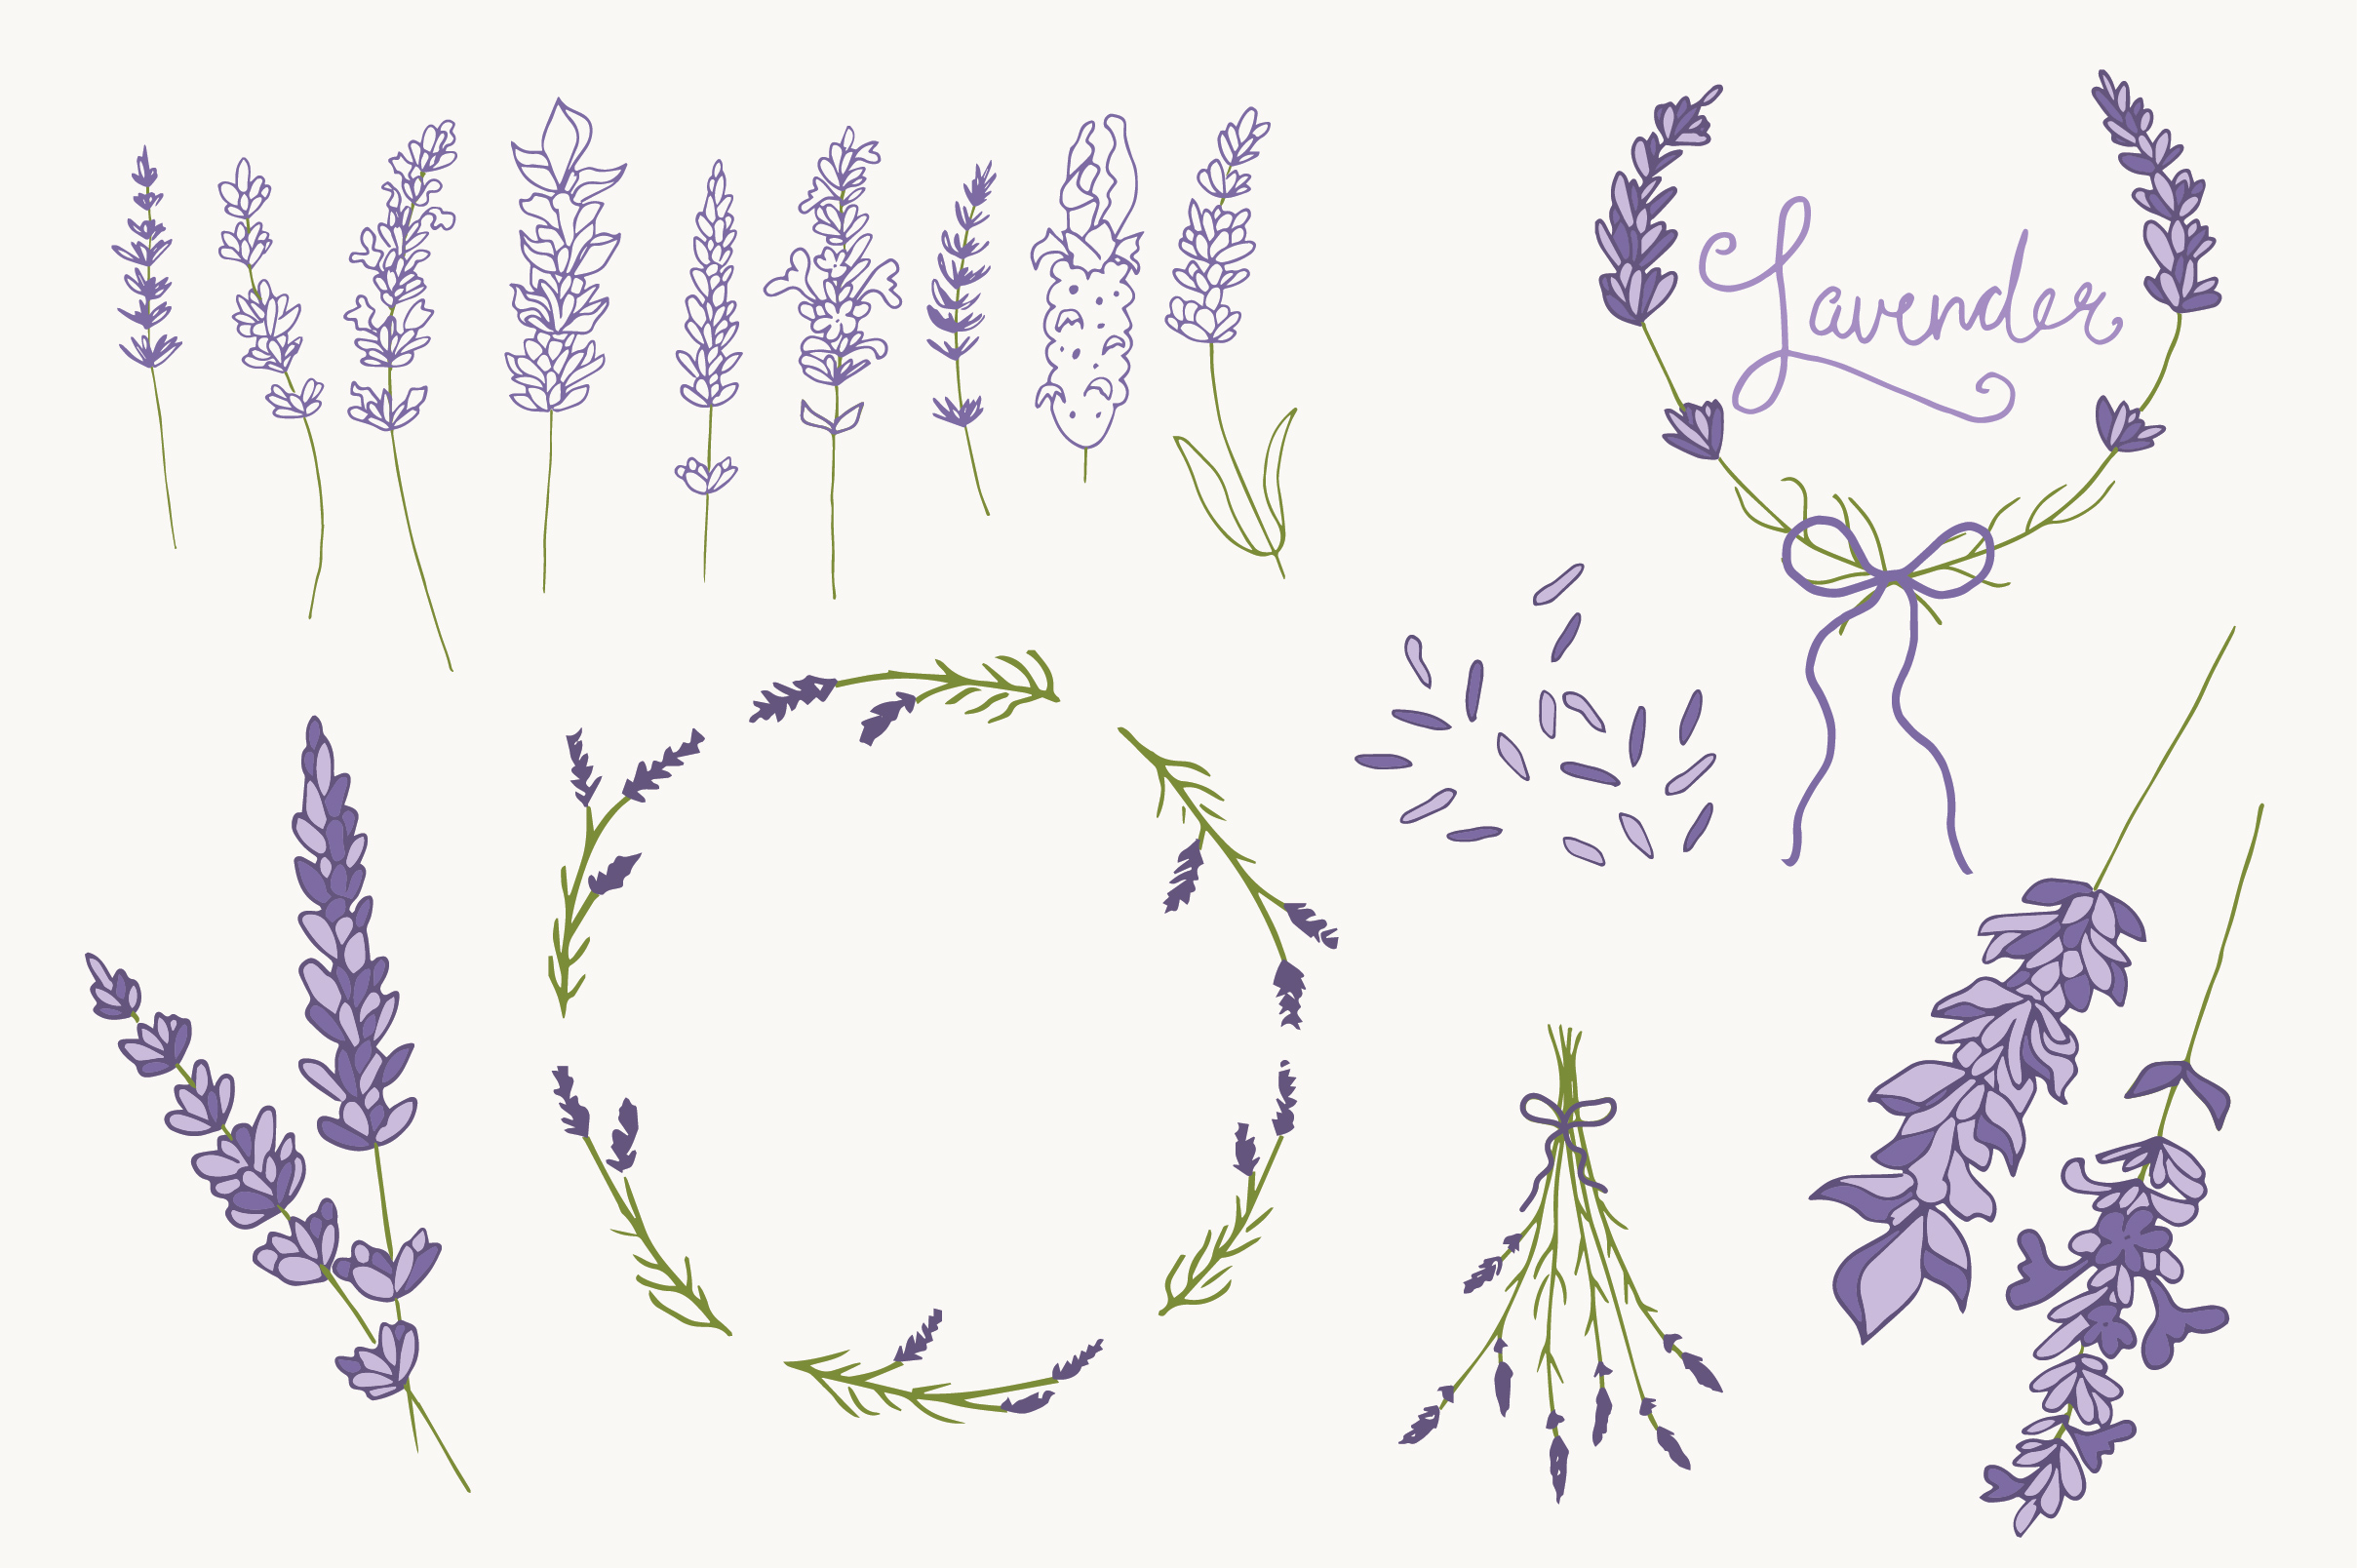 Lavender Vector Free at GetDrawings.com.